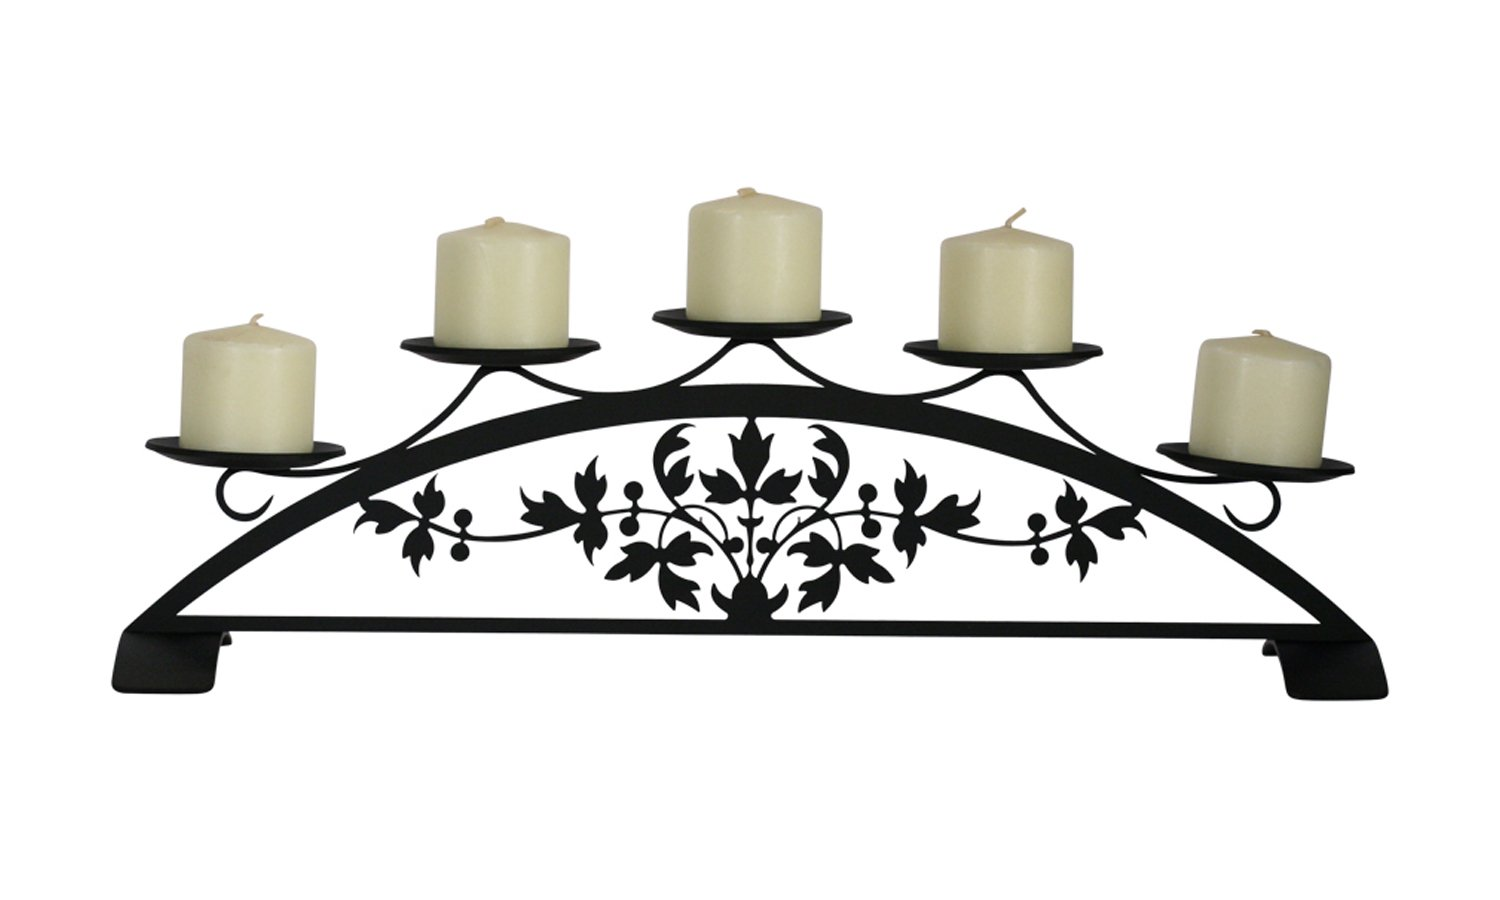 StealStreet C-PLB-173 18.5 Victorian Table Top Pillar Candle Holder Village Wrought Iron C-PFP-173